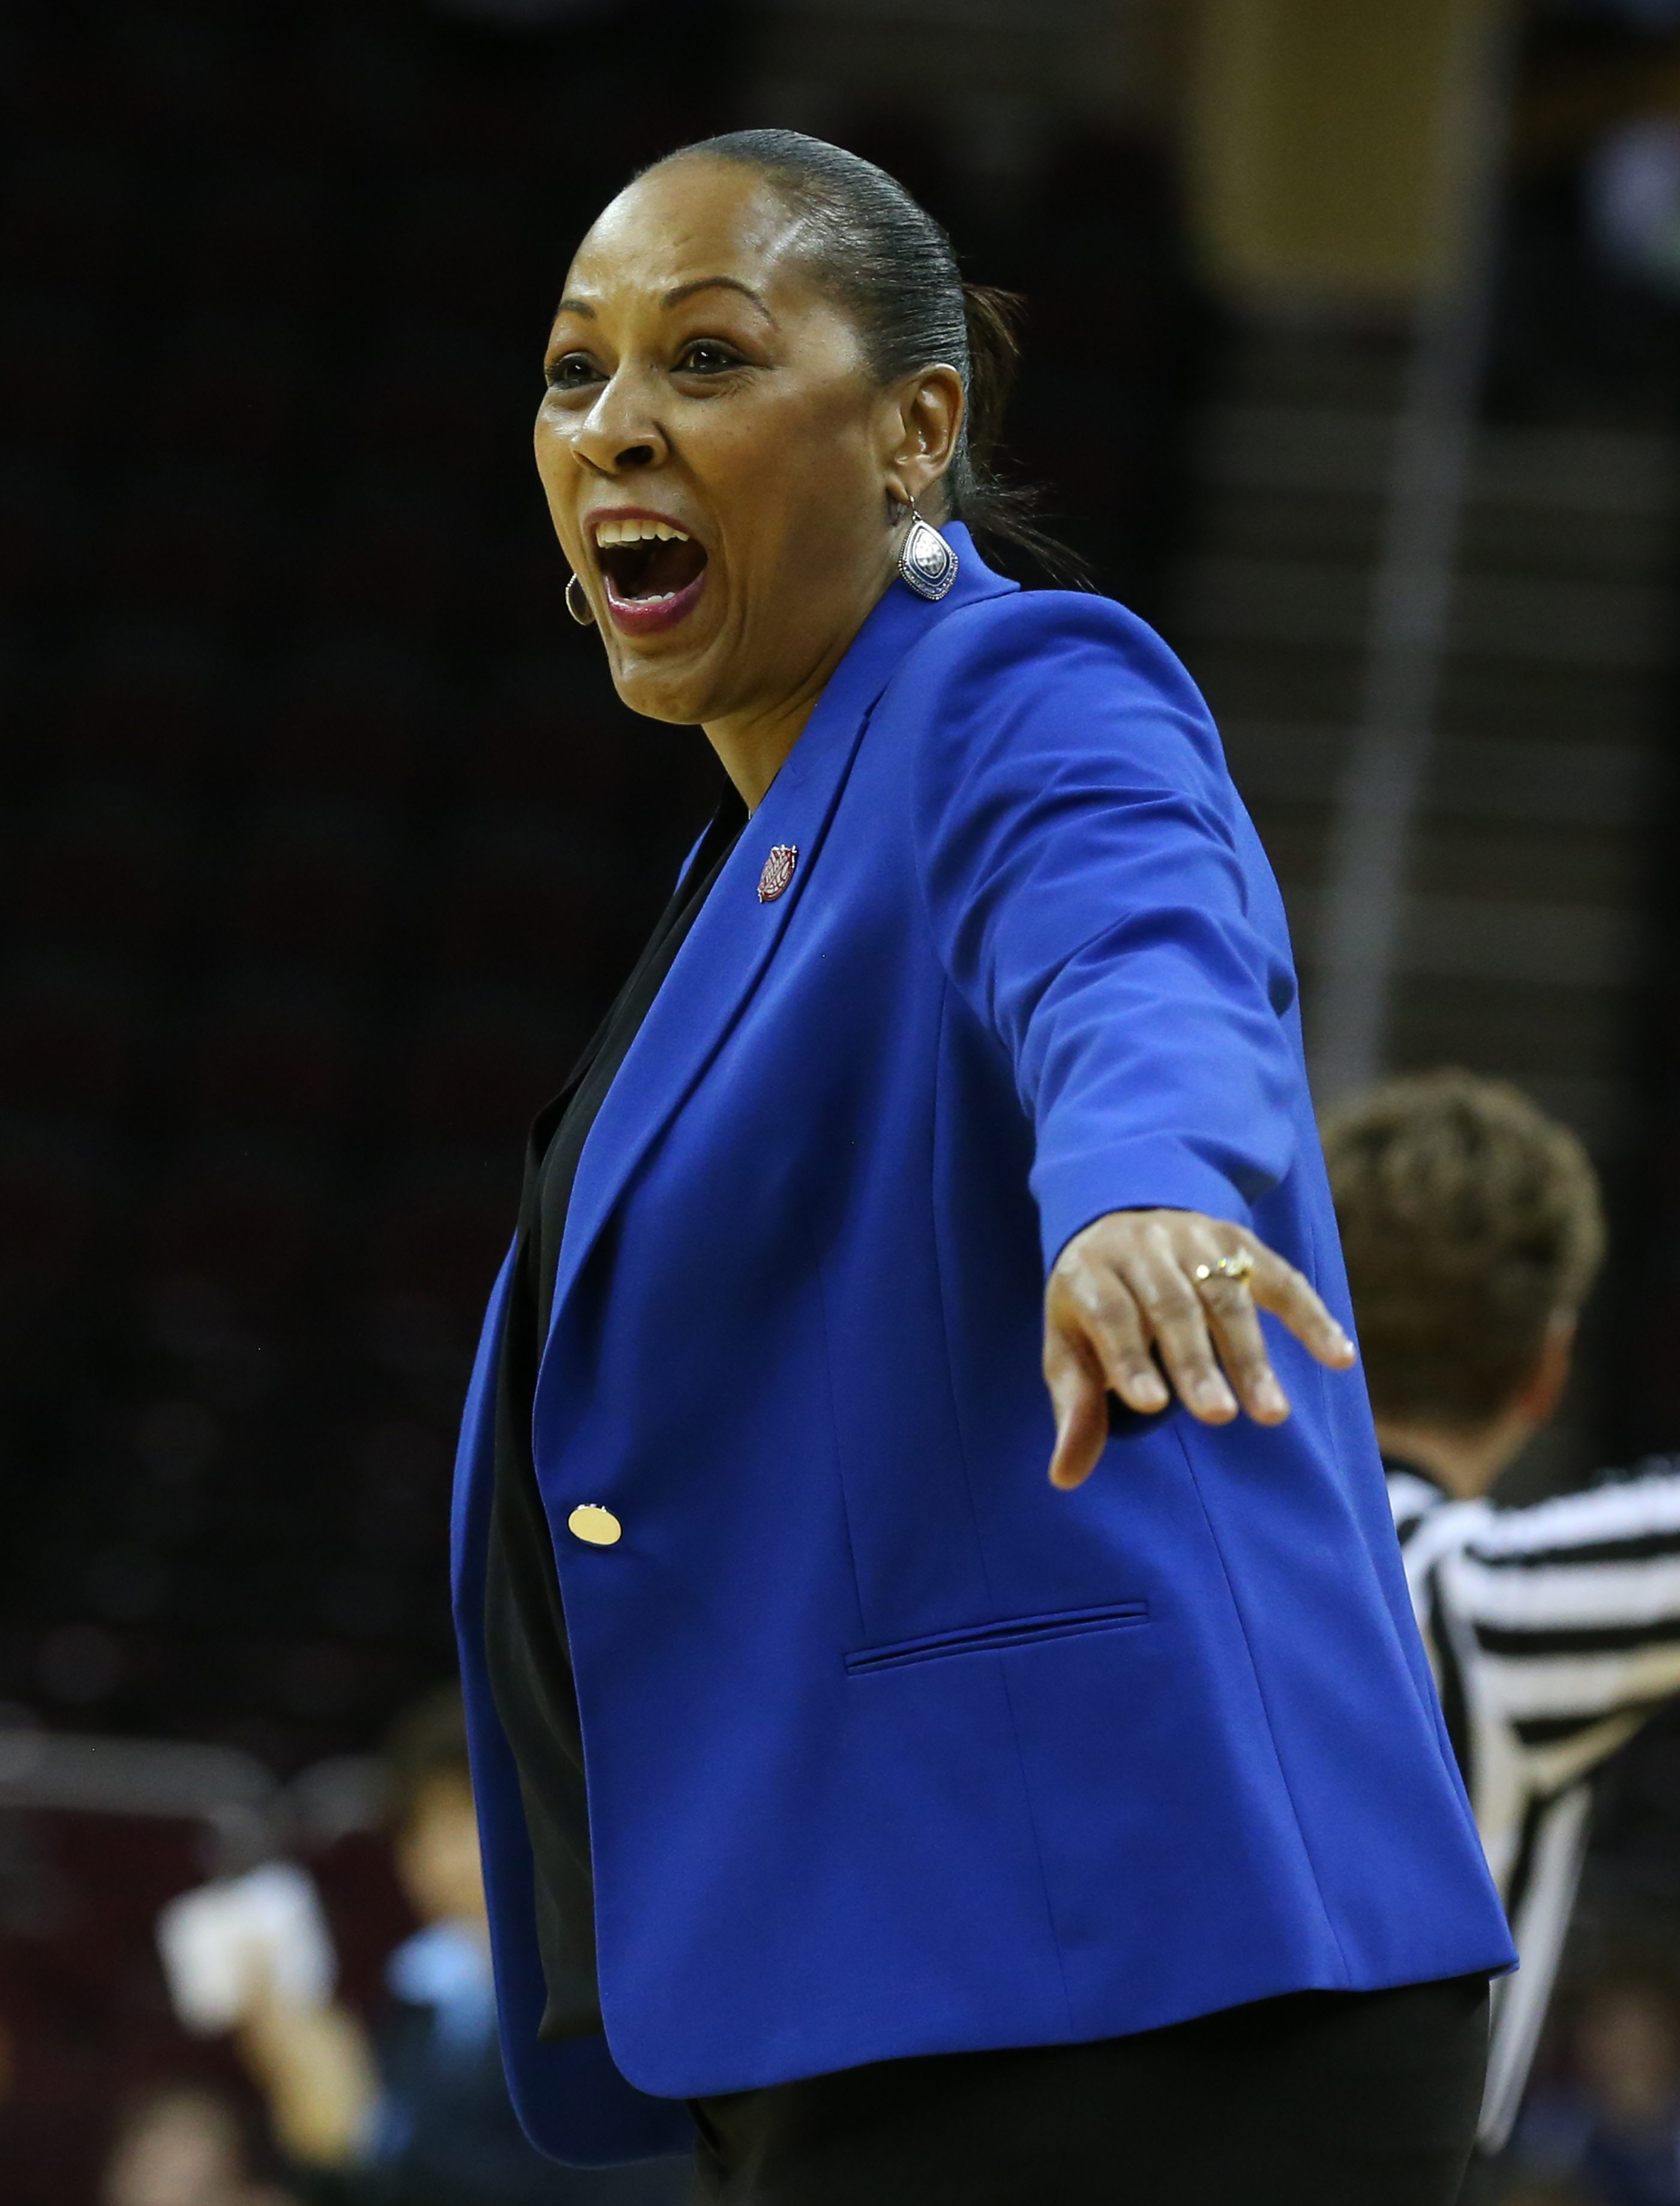 Buffalo Bulls head coach Felisha Legette-Jack celebrates after a basket in the fourth quarter of the semi final. UB won 88-87 to advance to the MAC Championship on Saturday at Quicken Loans Arena in Cleveland,NY on Friday, March 11, 2016. (James P. McCoy/ Buffalo News)